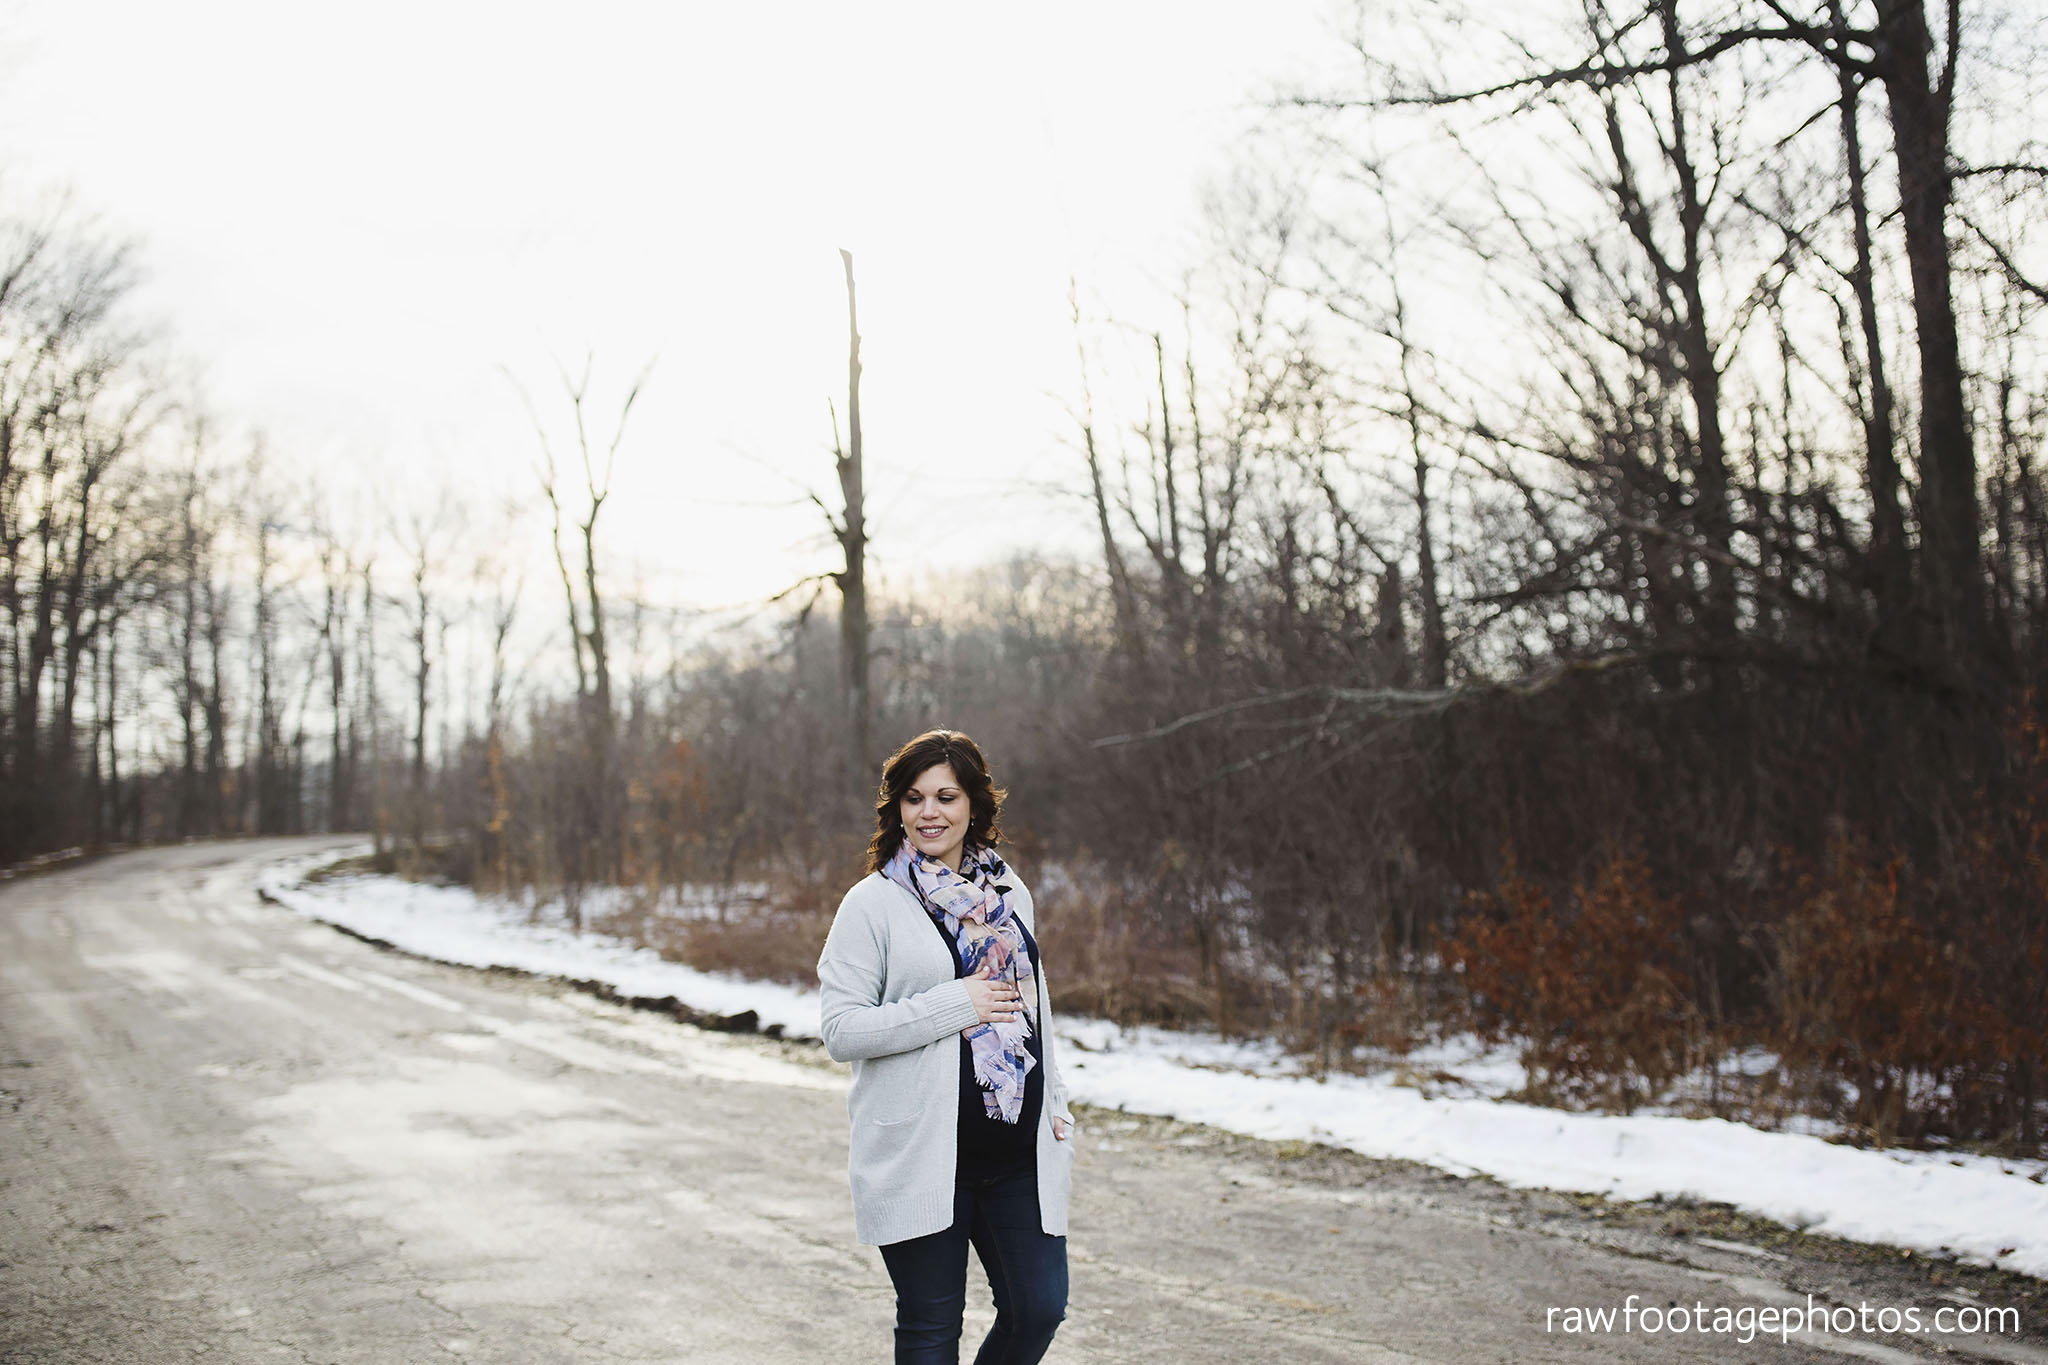 London_Ontario_Maternity_Photographer-Maternity_Session-Family_Photography-Winter_Photos-Raw_Footage_Photography020.jpg